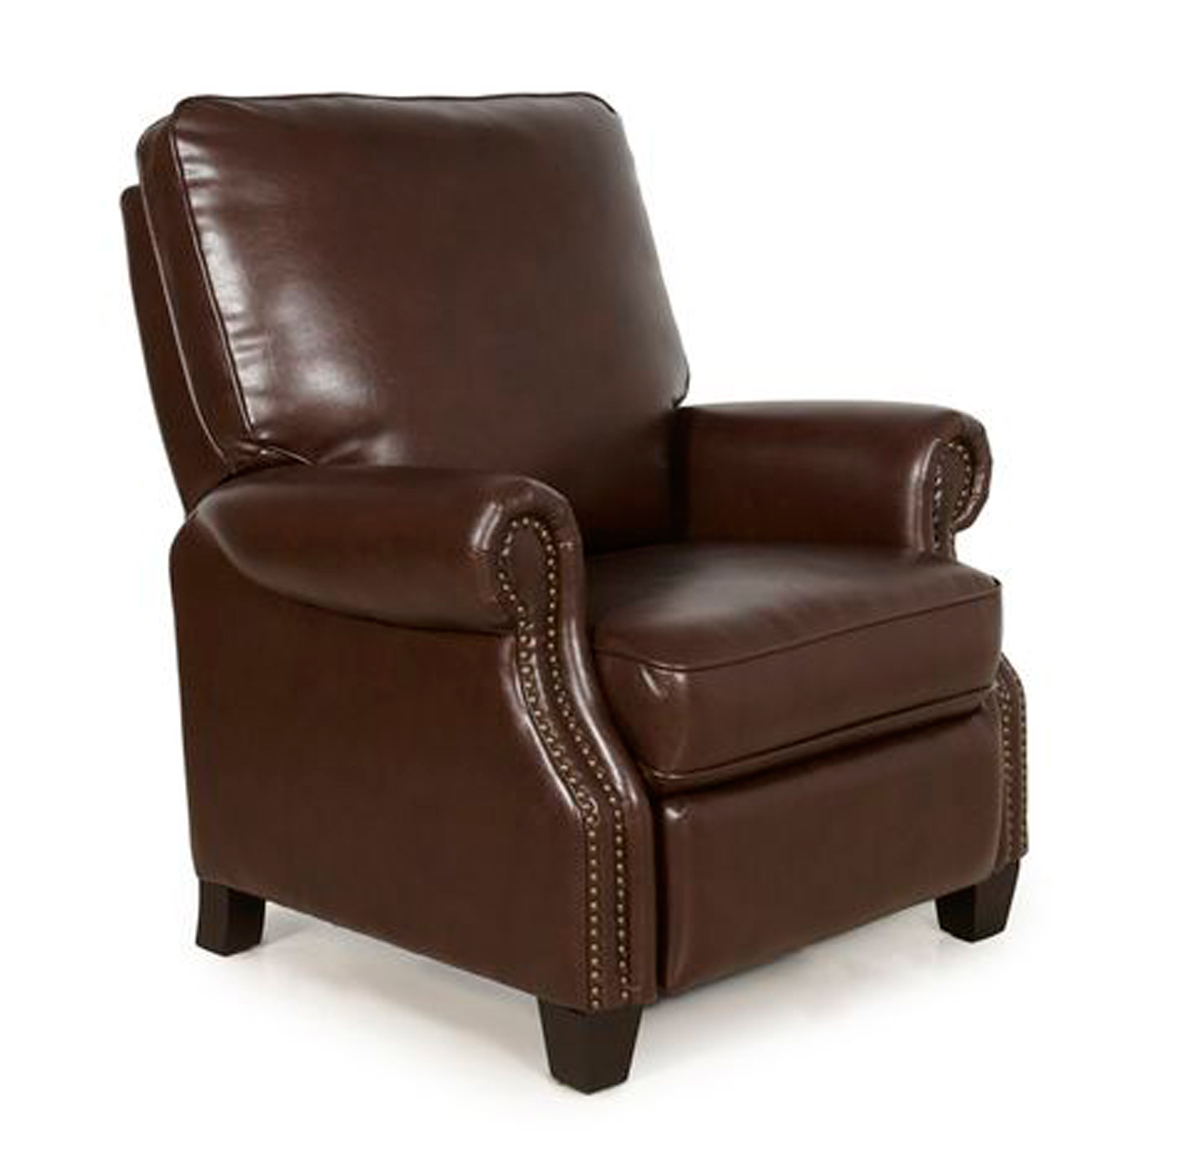 Barcalounger Lauren II Metro Living Recliner Chair - Abbott Saddle